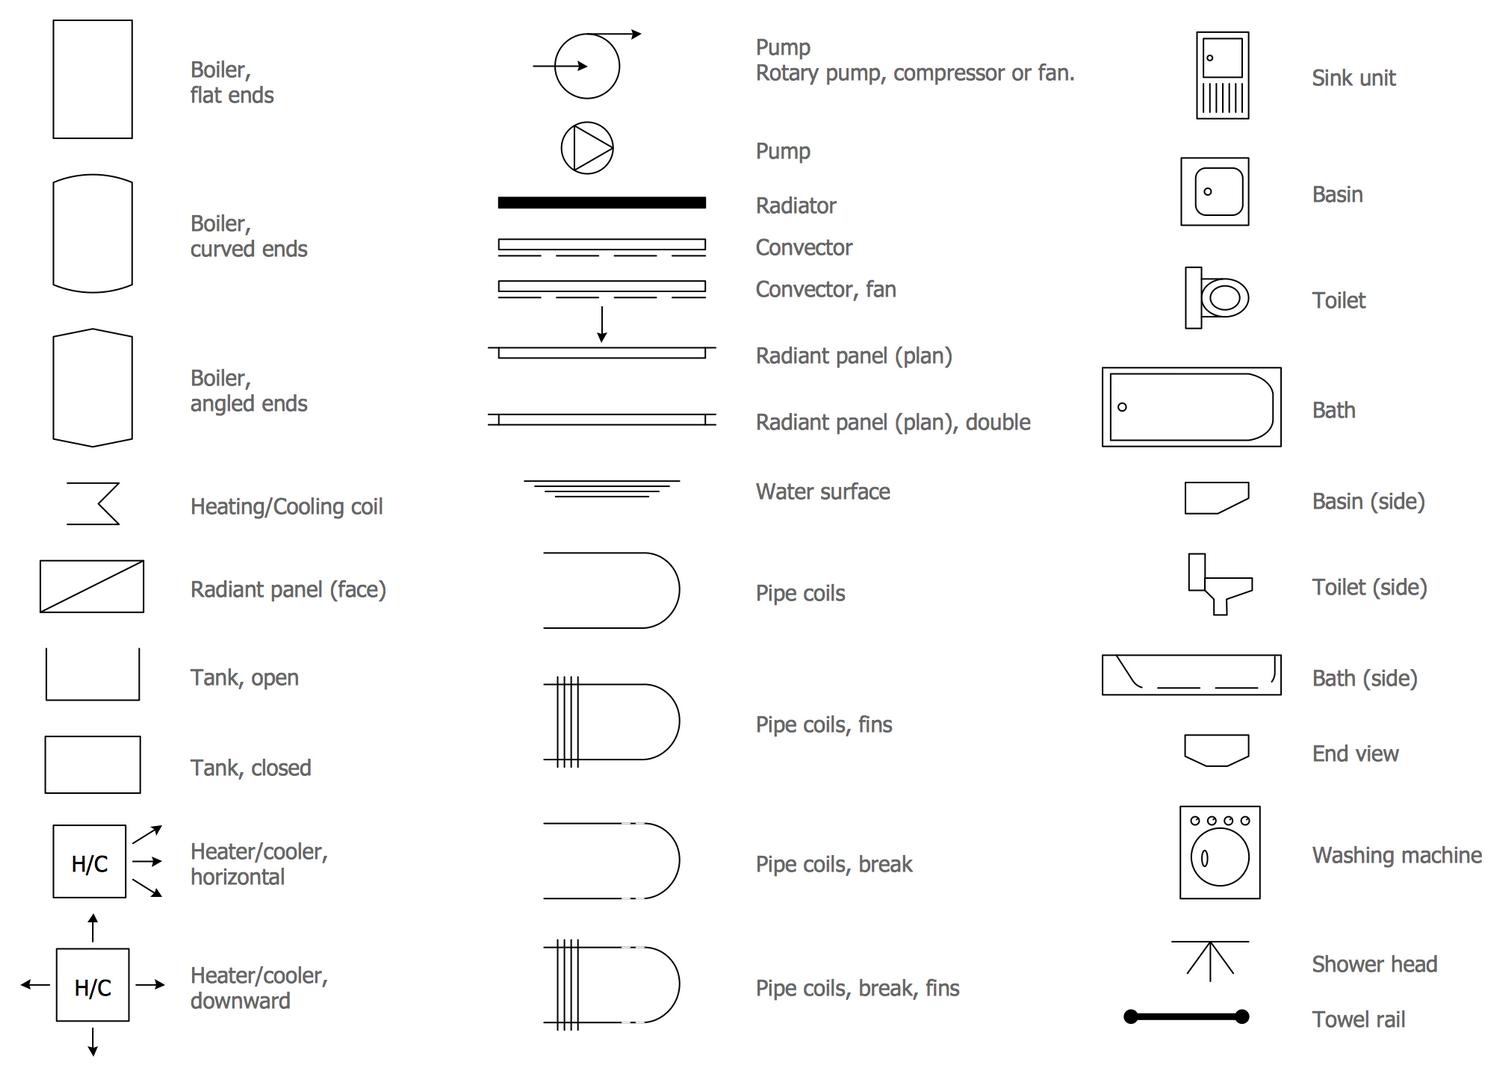 Piping Line Diagram Symbols Wiring Library Electrical And Instrumentation Design Elements Plumbing